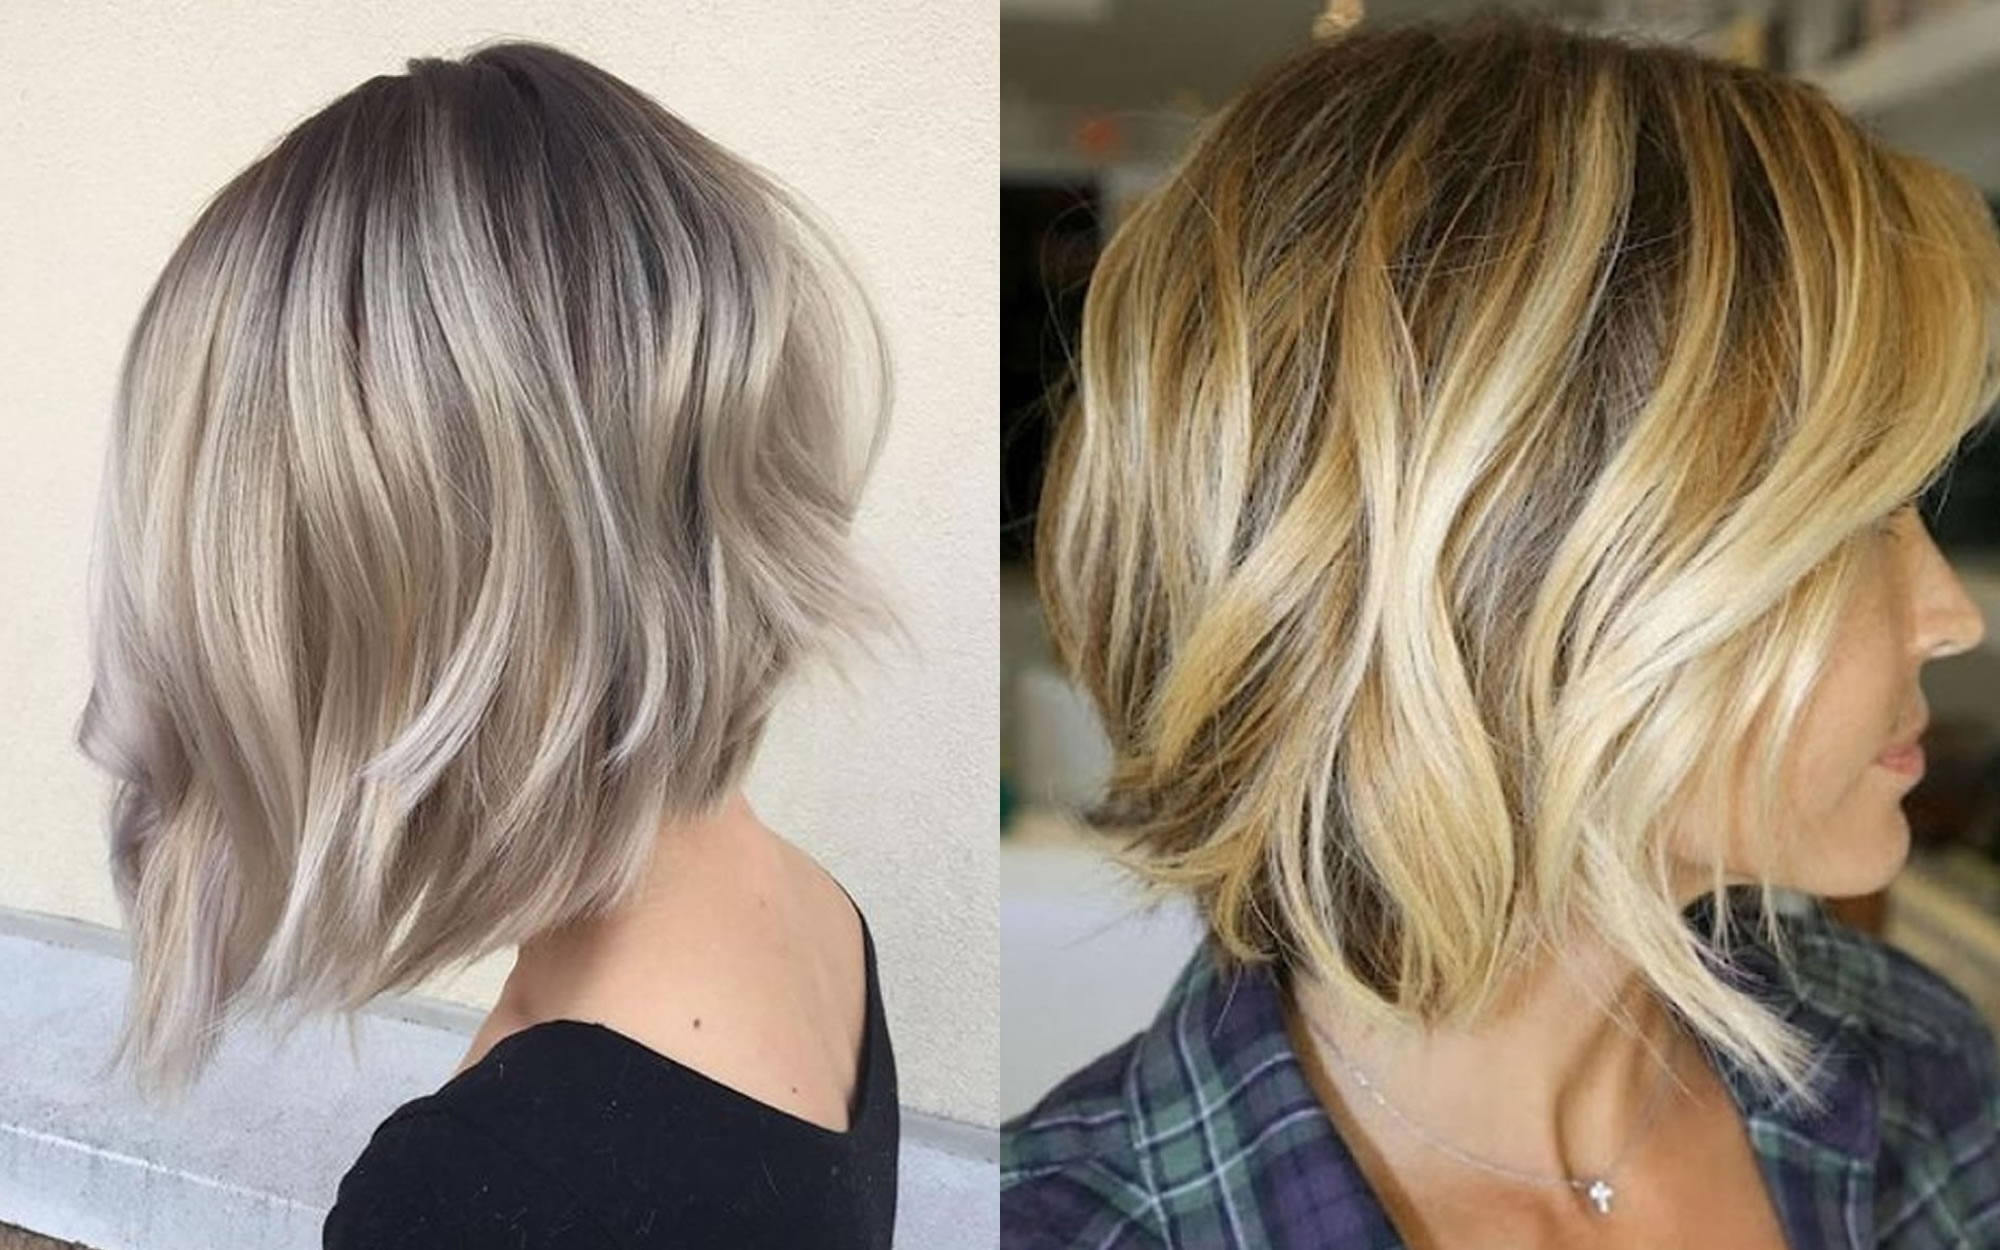 The Best 50 Balayage Bob Hairstyles (Short+Long) & Highlights – Page With Well Liked Shaggy Pixie Hairstyles With Balayage Highlights (View 19 of 20)